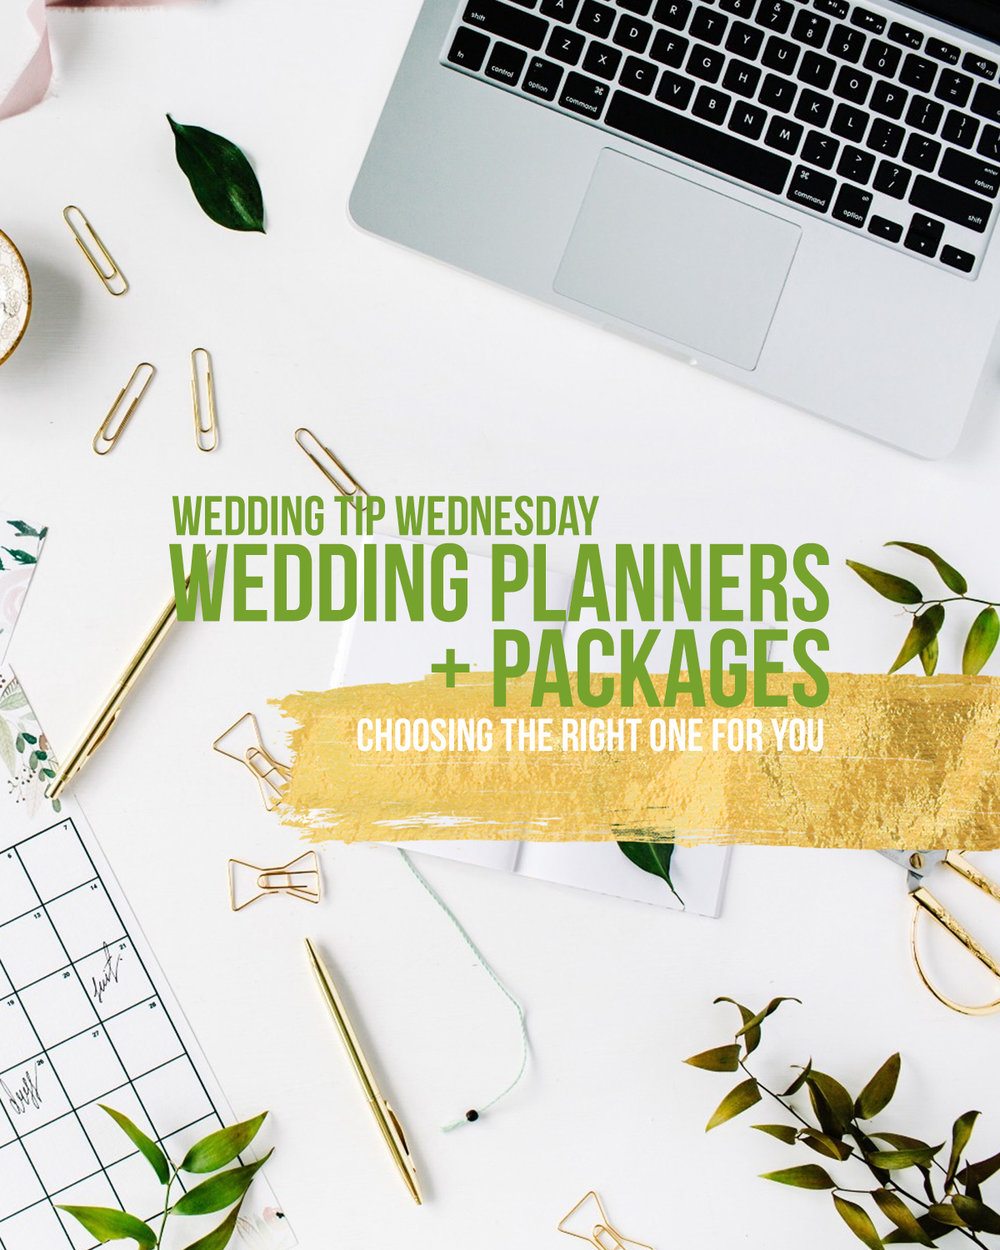 Wedding-Planners-Packages-Insta-Graphic.jpg